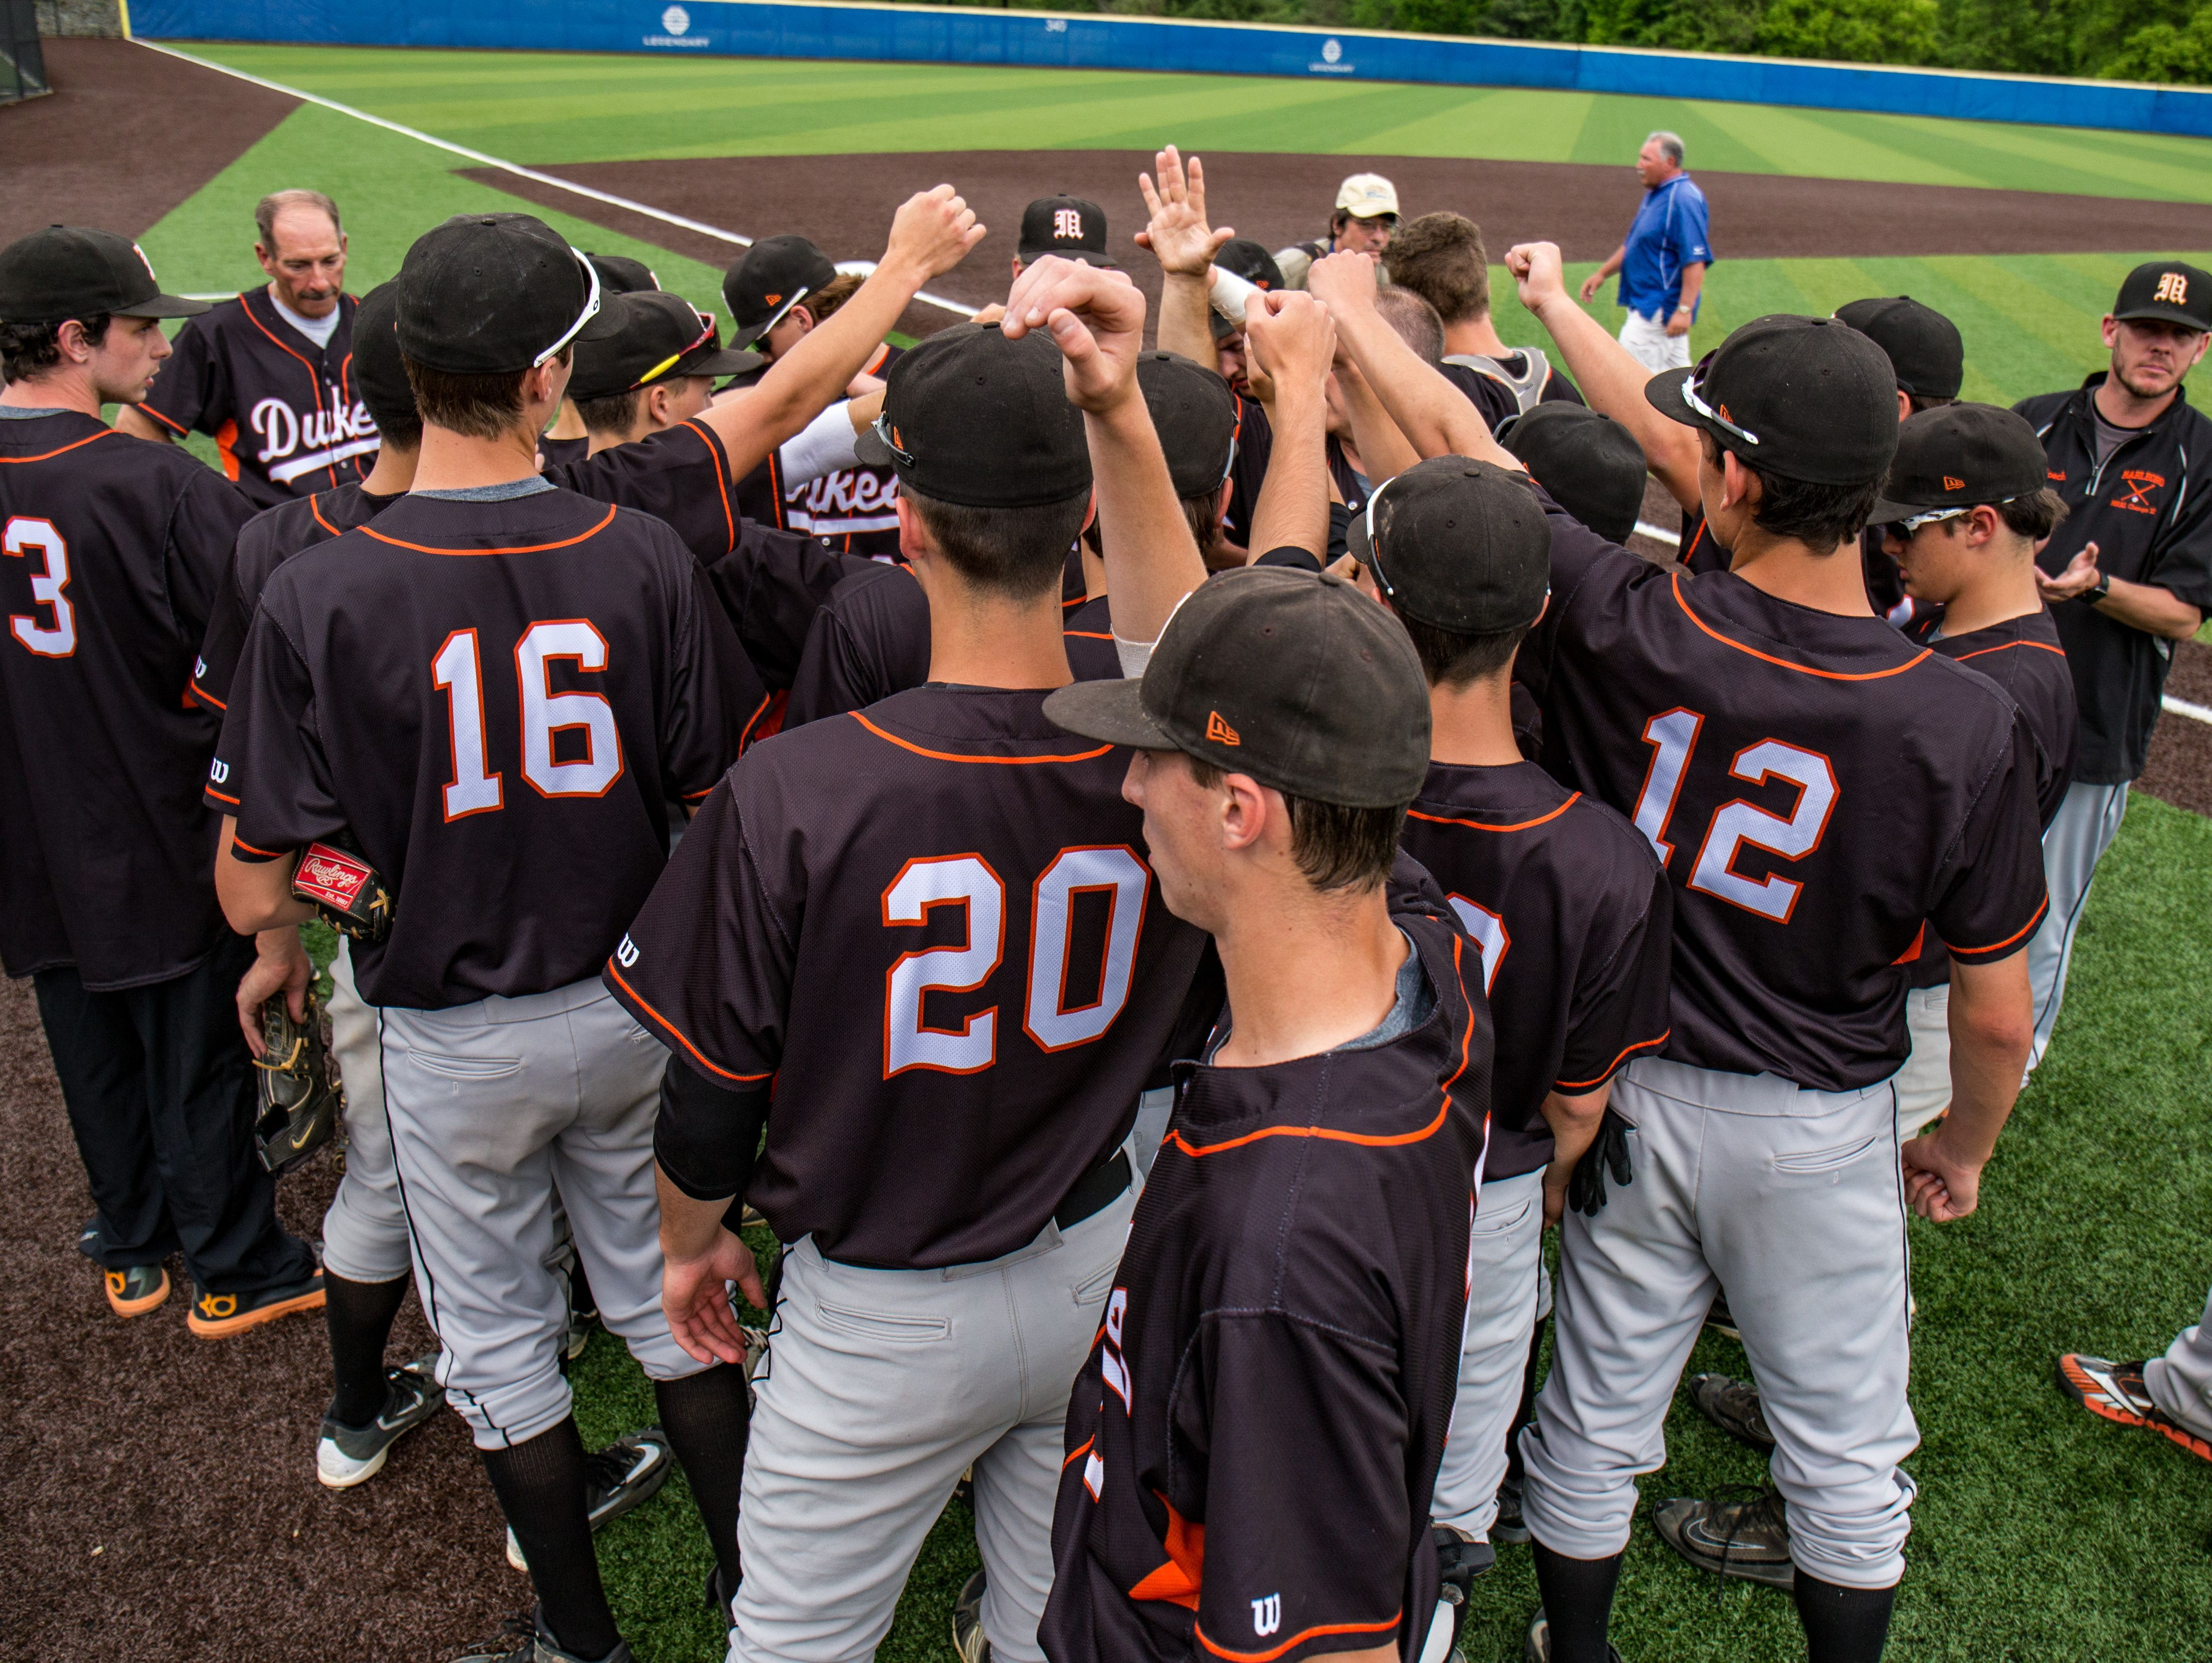 In this file photo from June 11, 2016, Marlboro High School's baseball team huddles before the Class B state semifinal in Endwell. The Iron Dukes began this season with a 10-0 win over Highland Thursday.